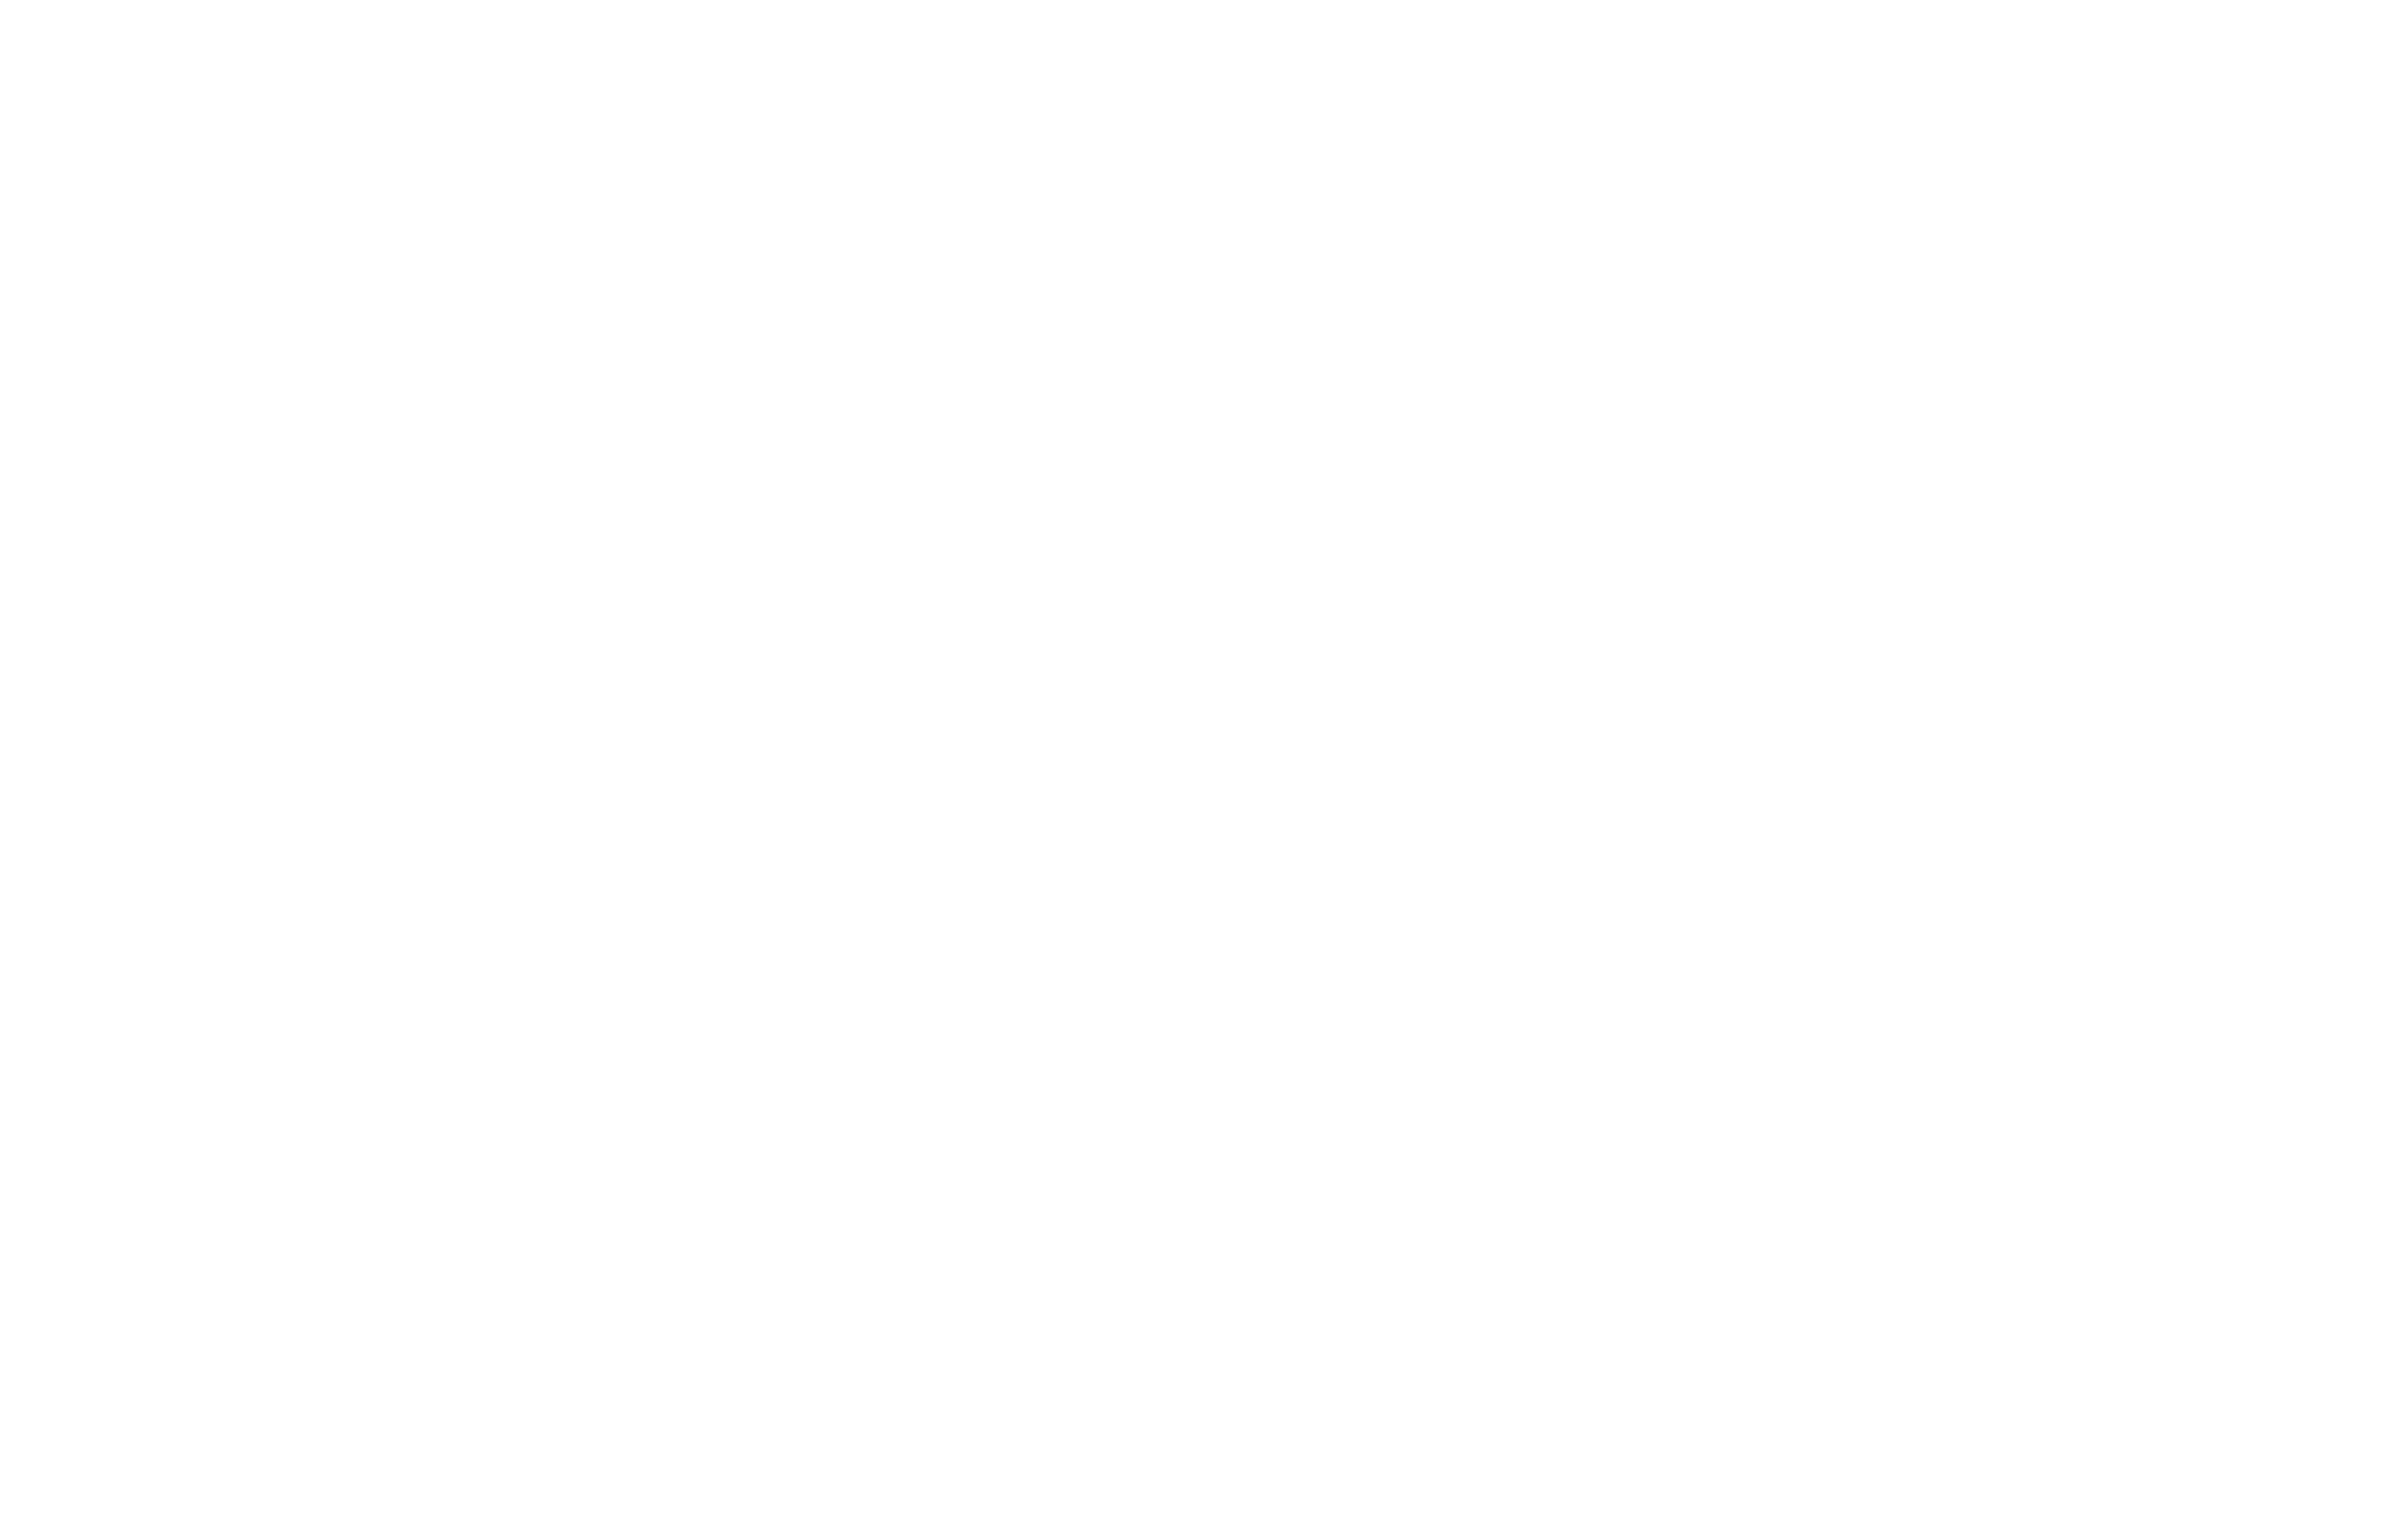 white logo for cloudy zebra seo